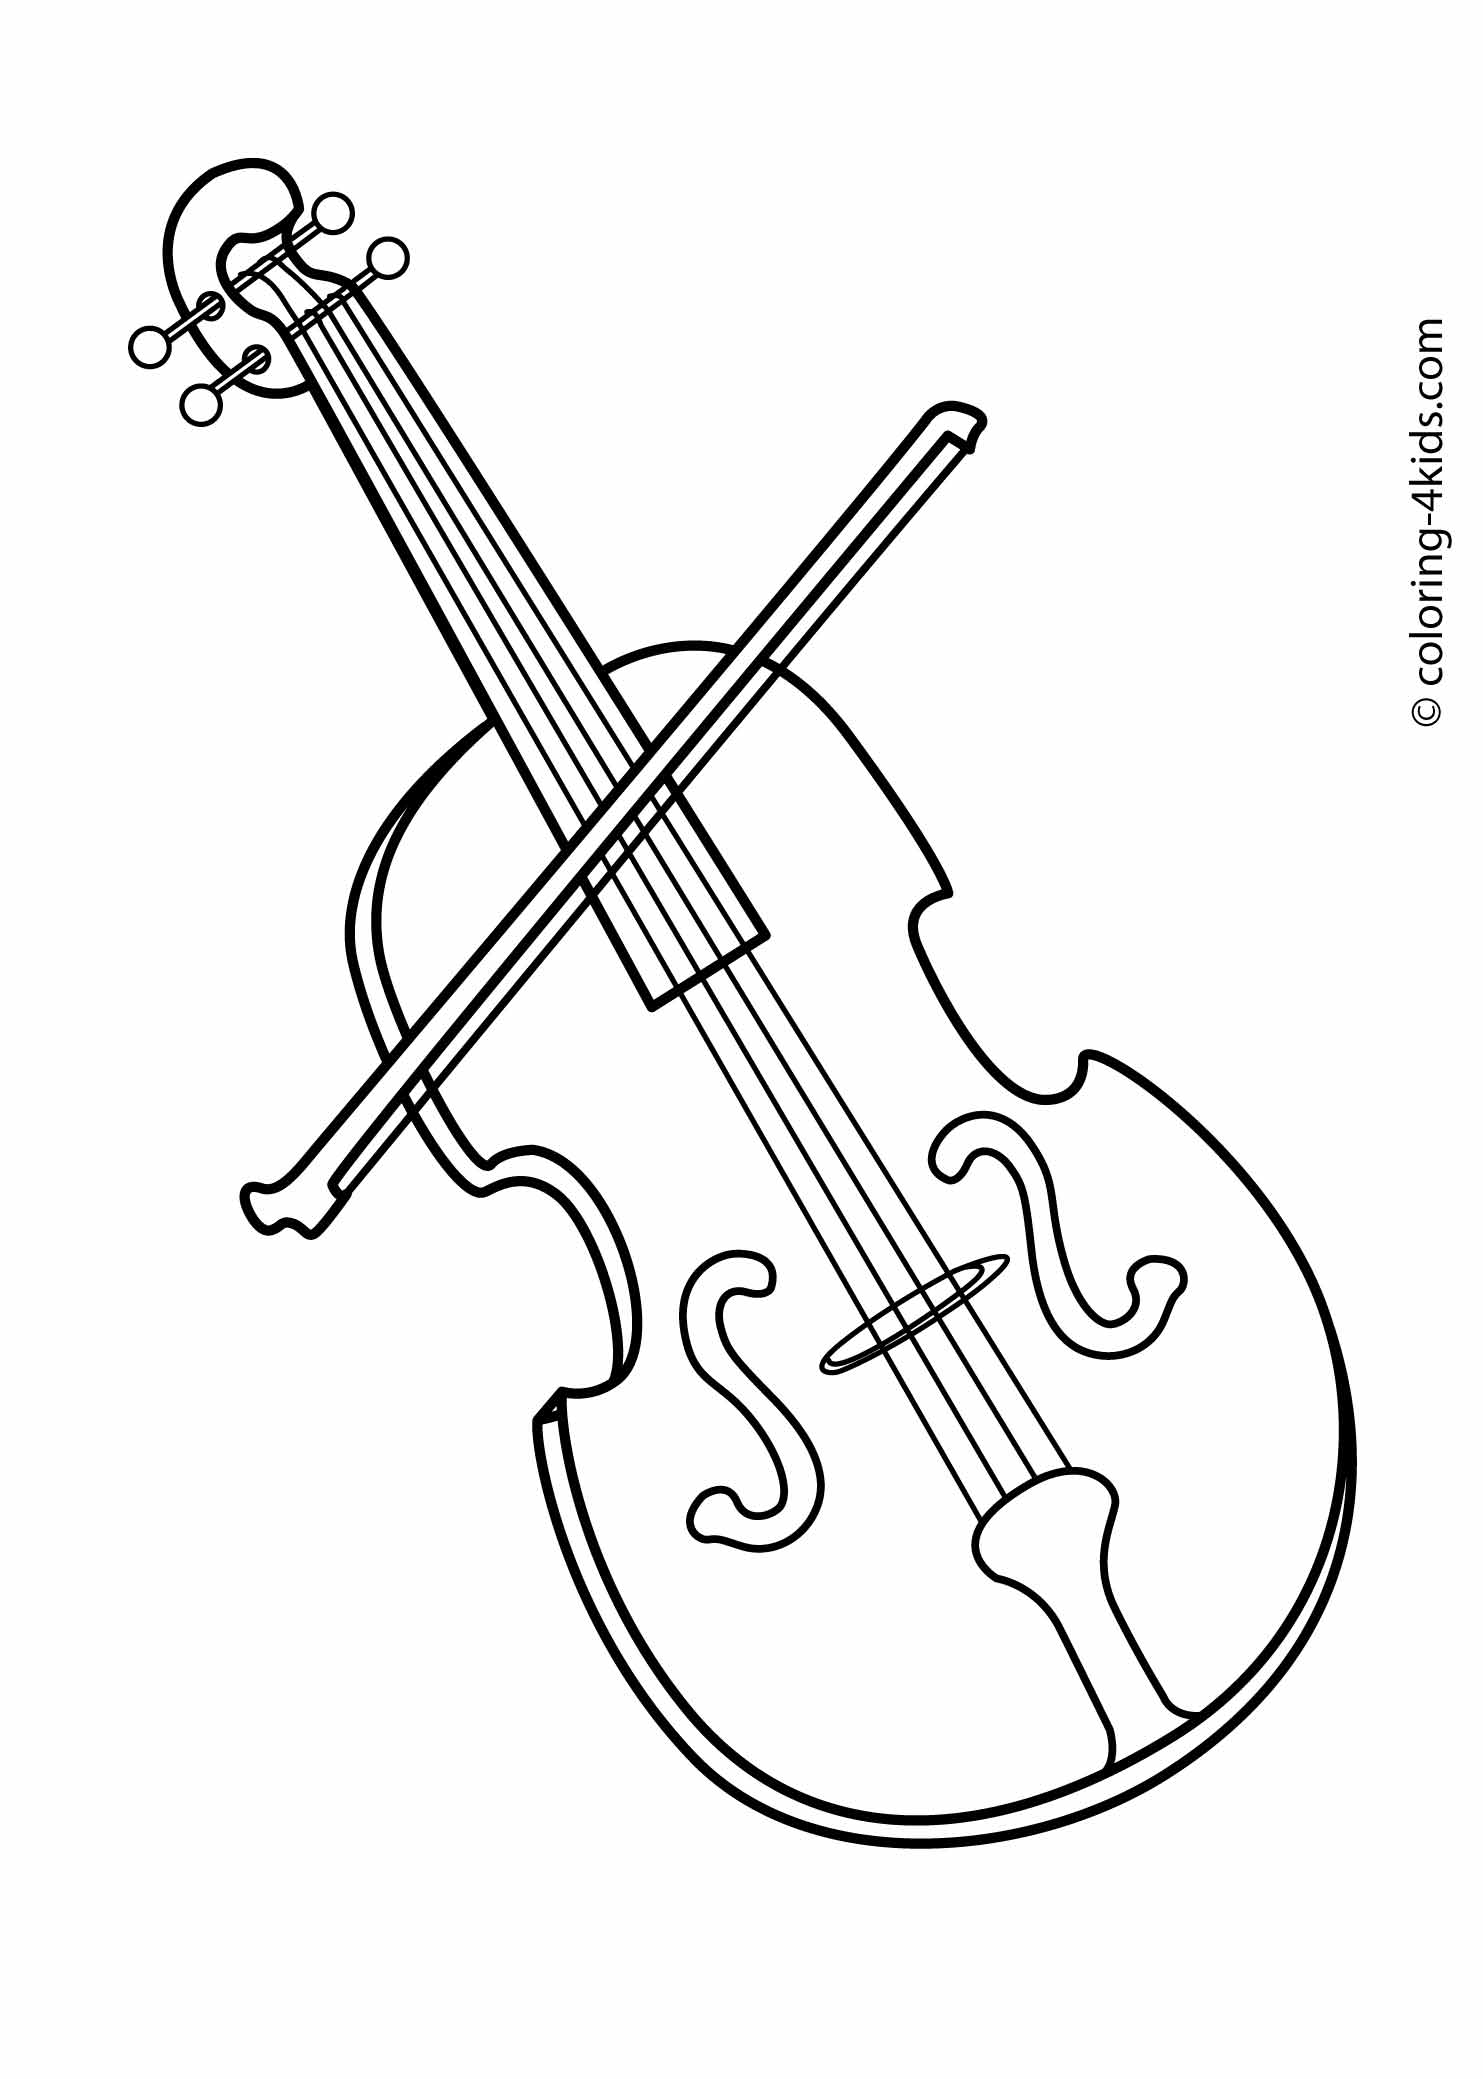 printable pictures of musical instruments kids n funcom 62 coloring pages of musical instruments pictures of musical printable instruments